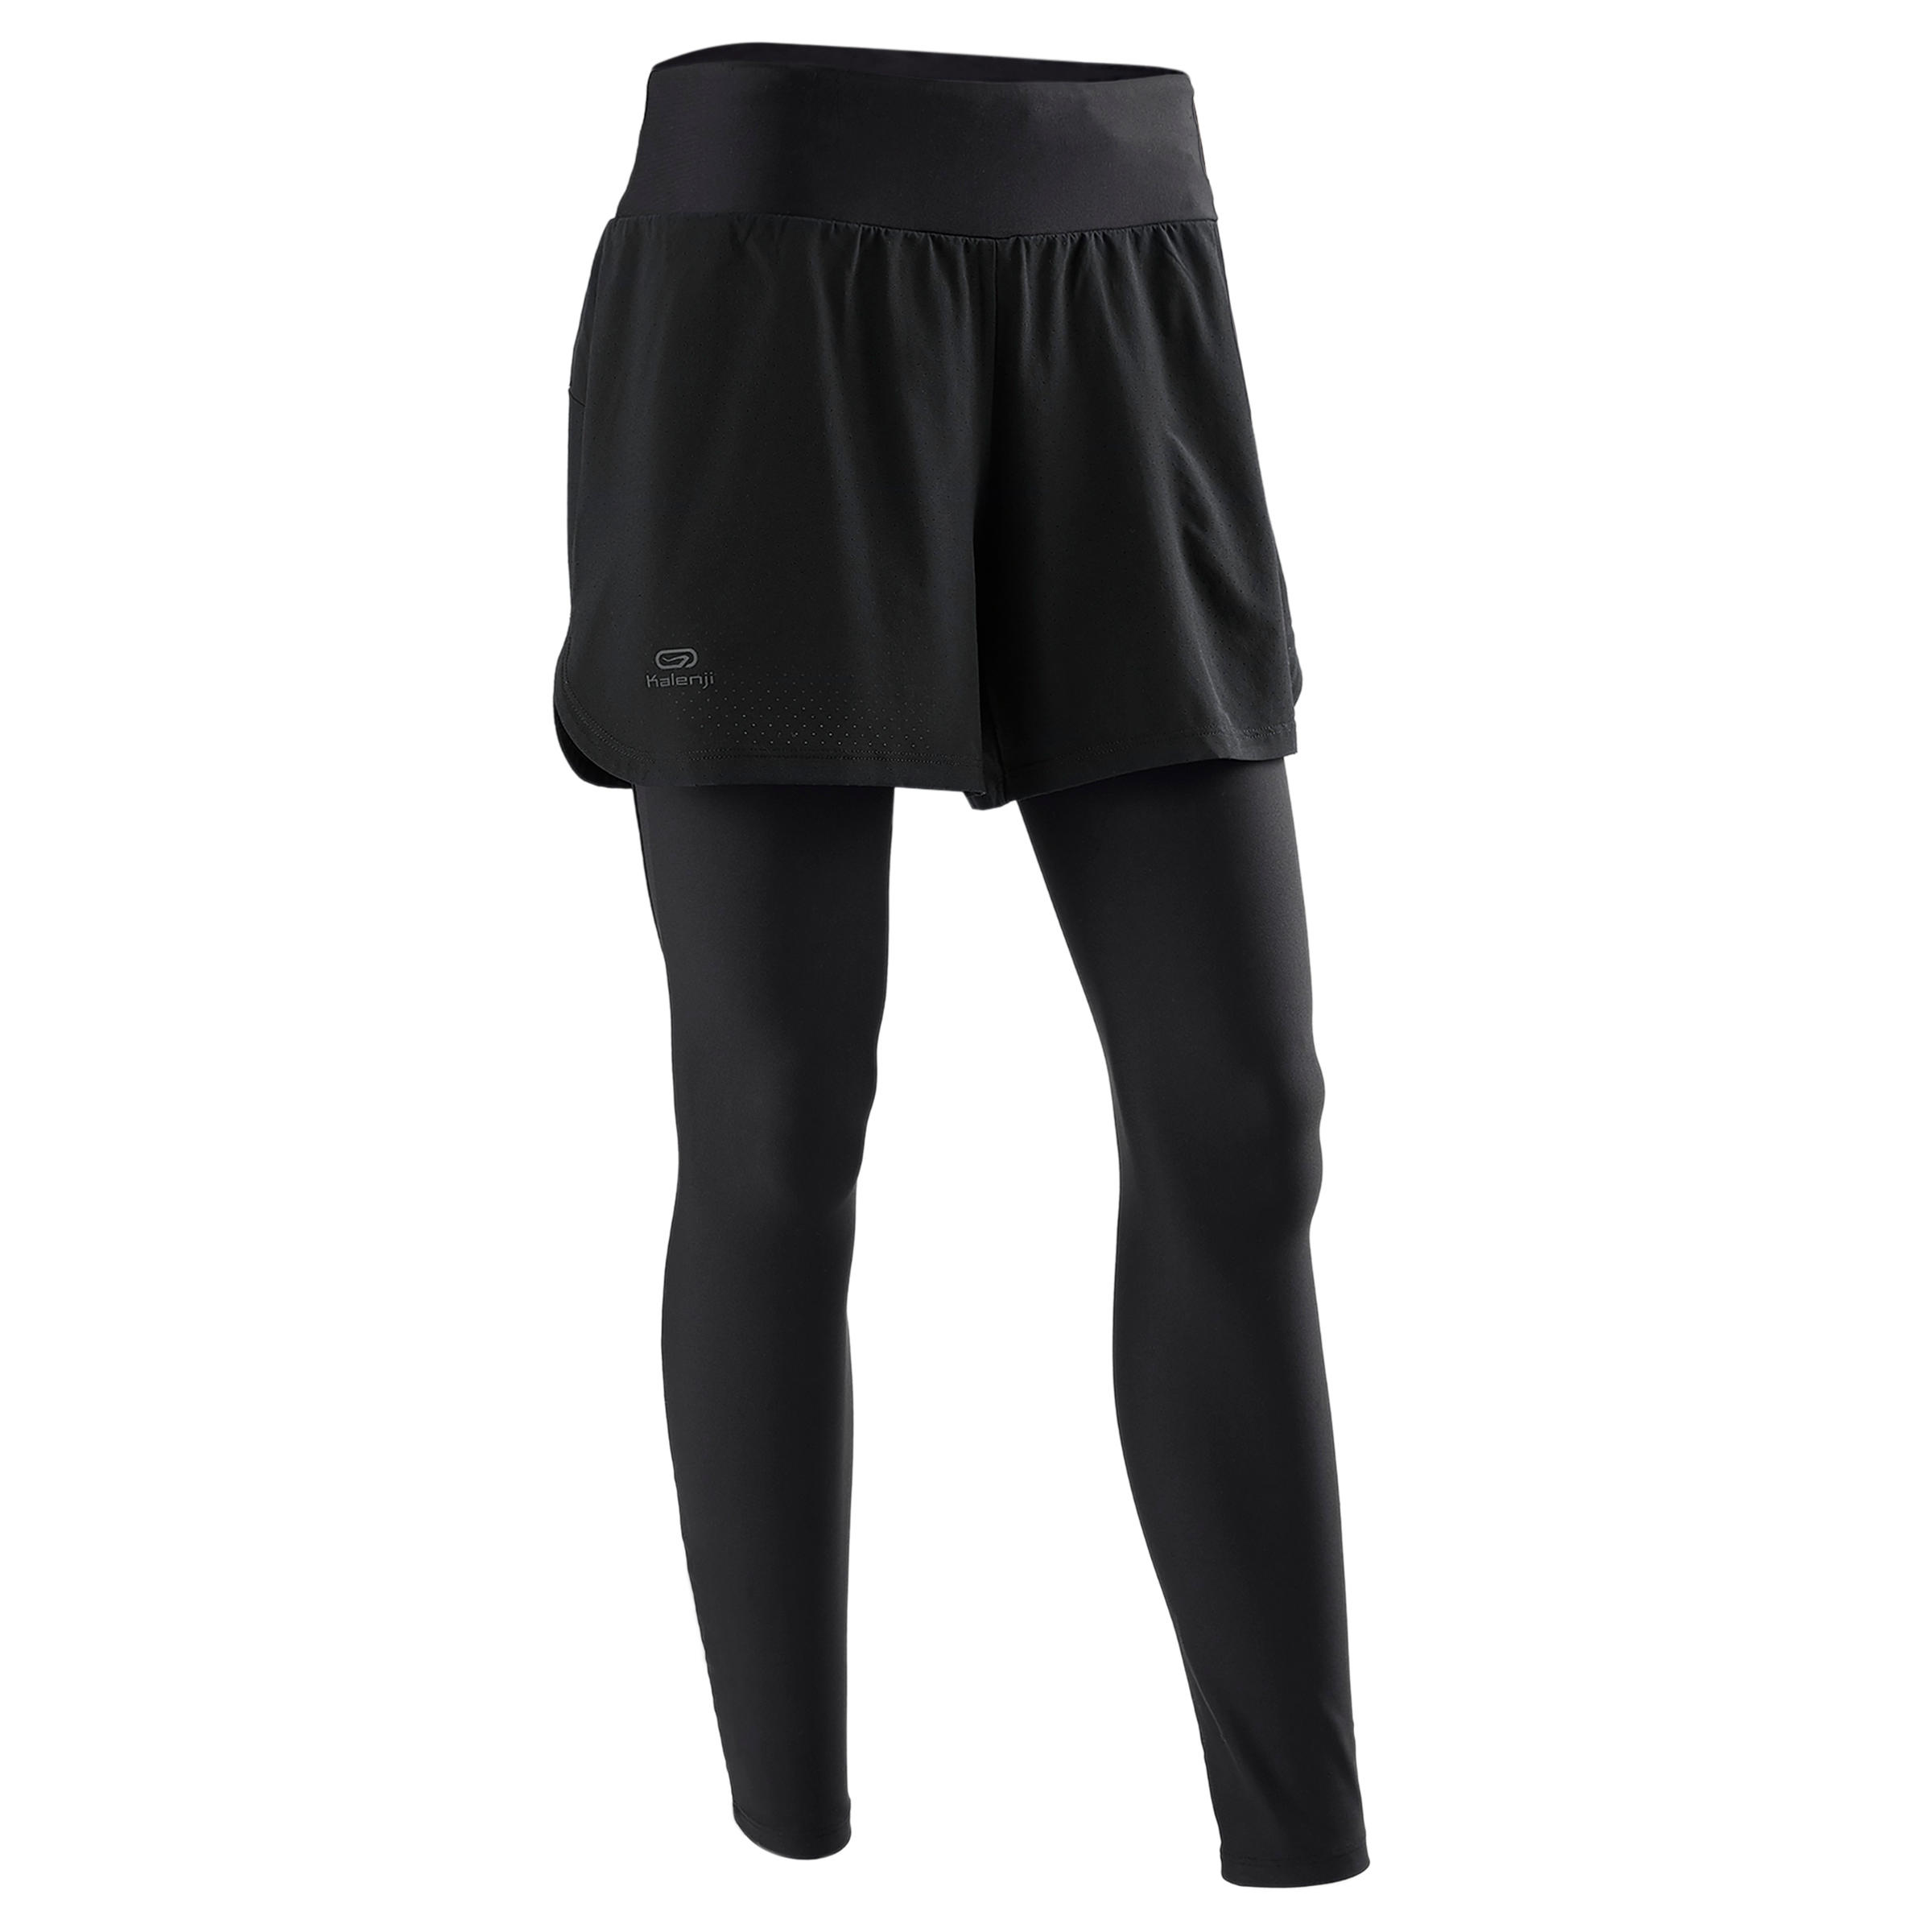 MALLAS SHORT 2 EN 1 RUNNING MUJER RUN DRY+ NEGRO